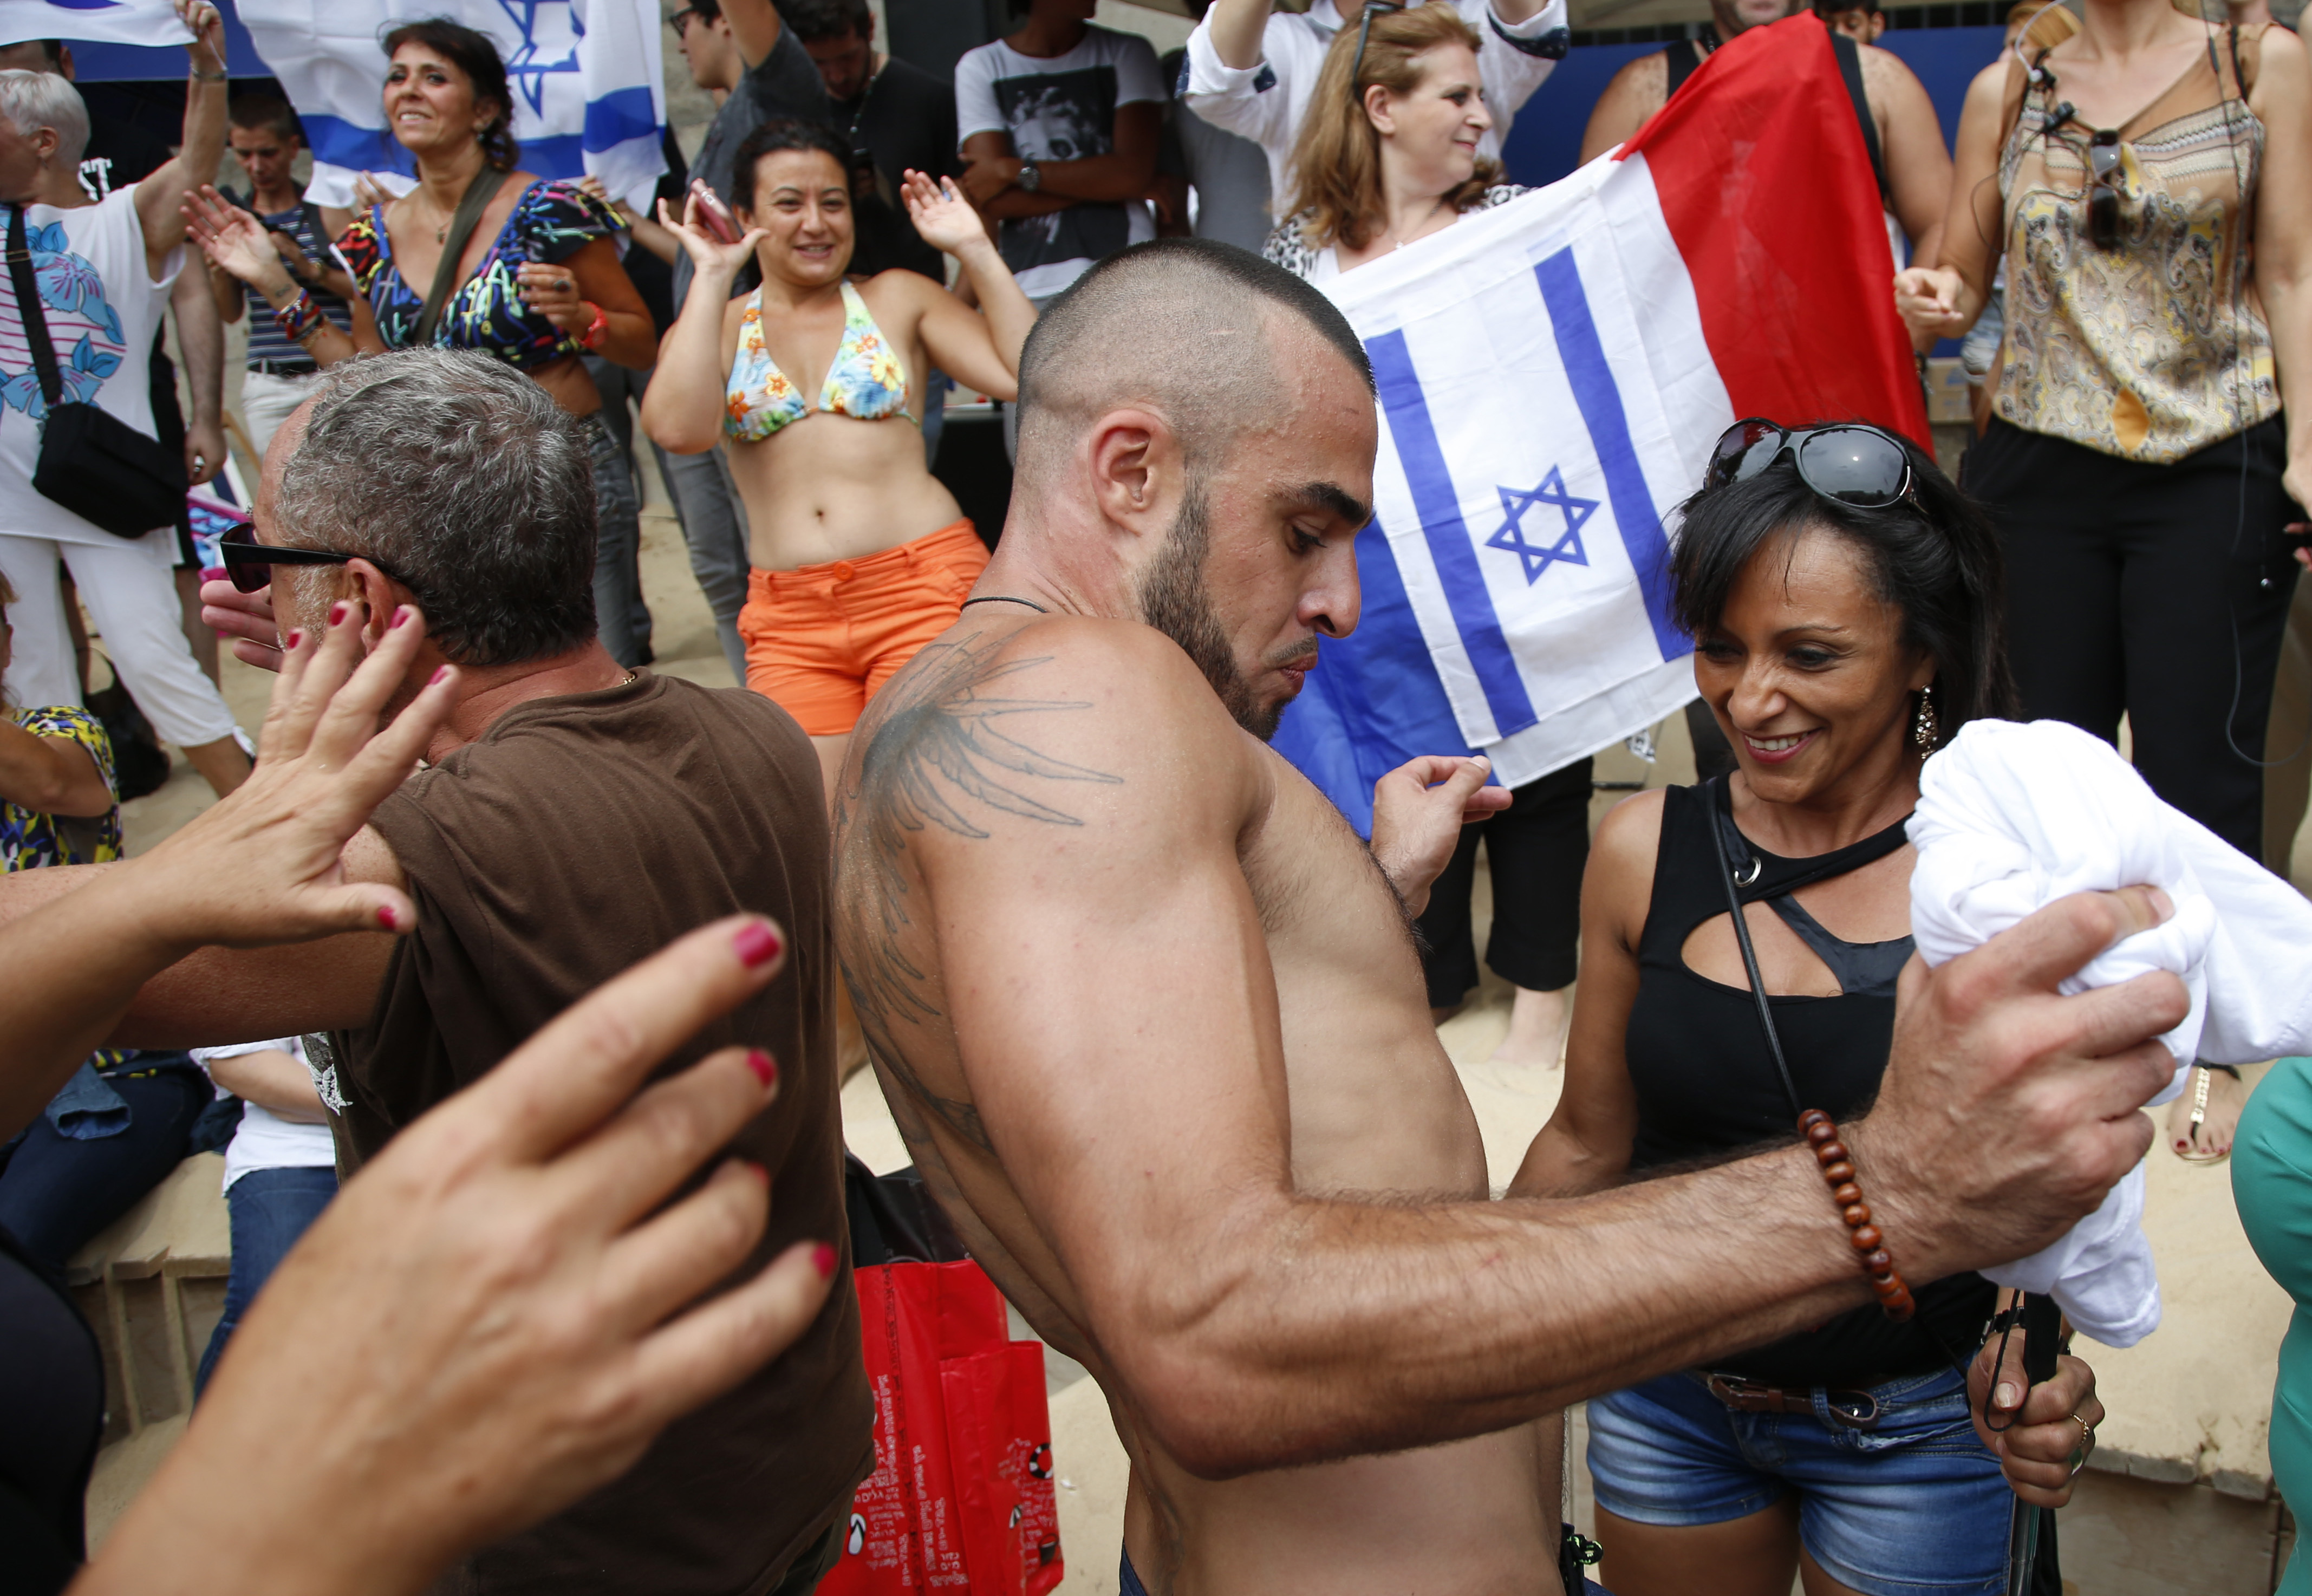 A Paris 'Beach Party' Turns Into A Middle East Protest